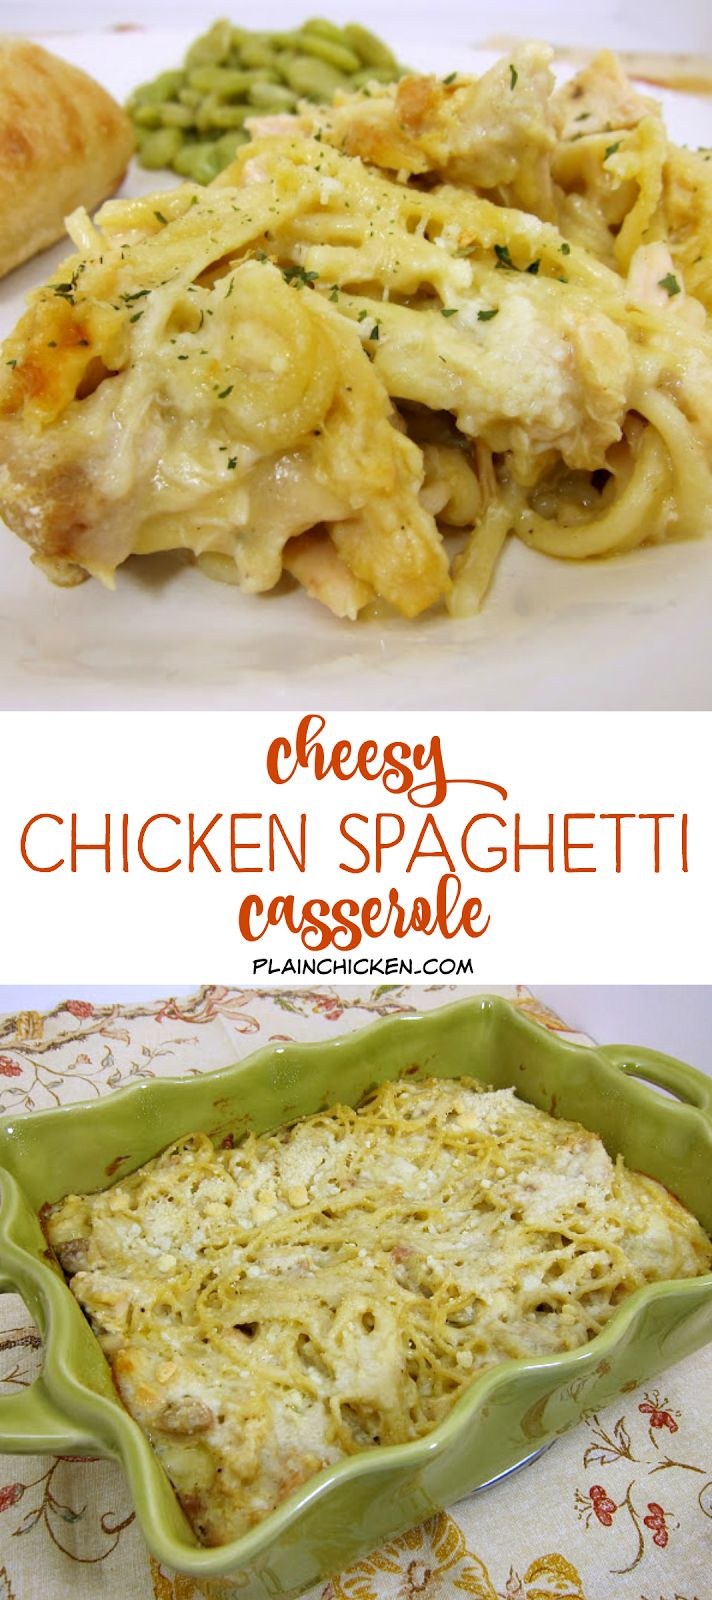 Cheesy Chicken Spaghetti Casserole - spaghetti, chicken, cream of chicken, milk, onion, garlic, mozzarella and parmesan cheese - Ready in 30 minutes! We love this quick weeknight meal!! Can make ahead of time and freeze or refrigerate for later. Kids love this casserole!!